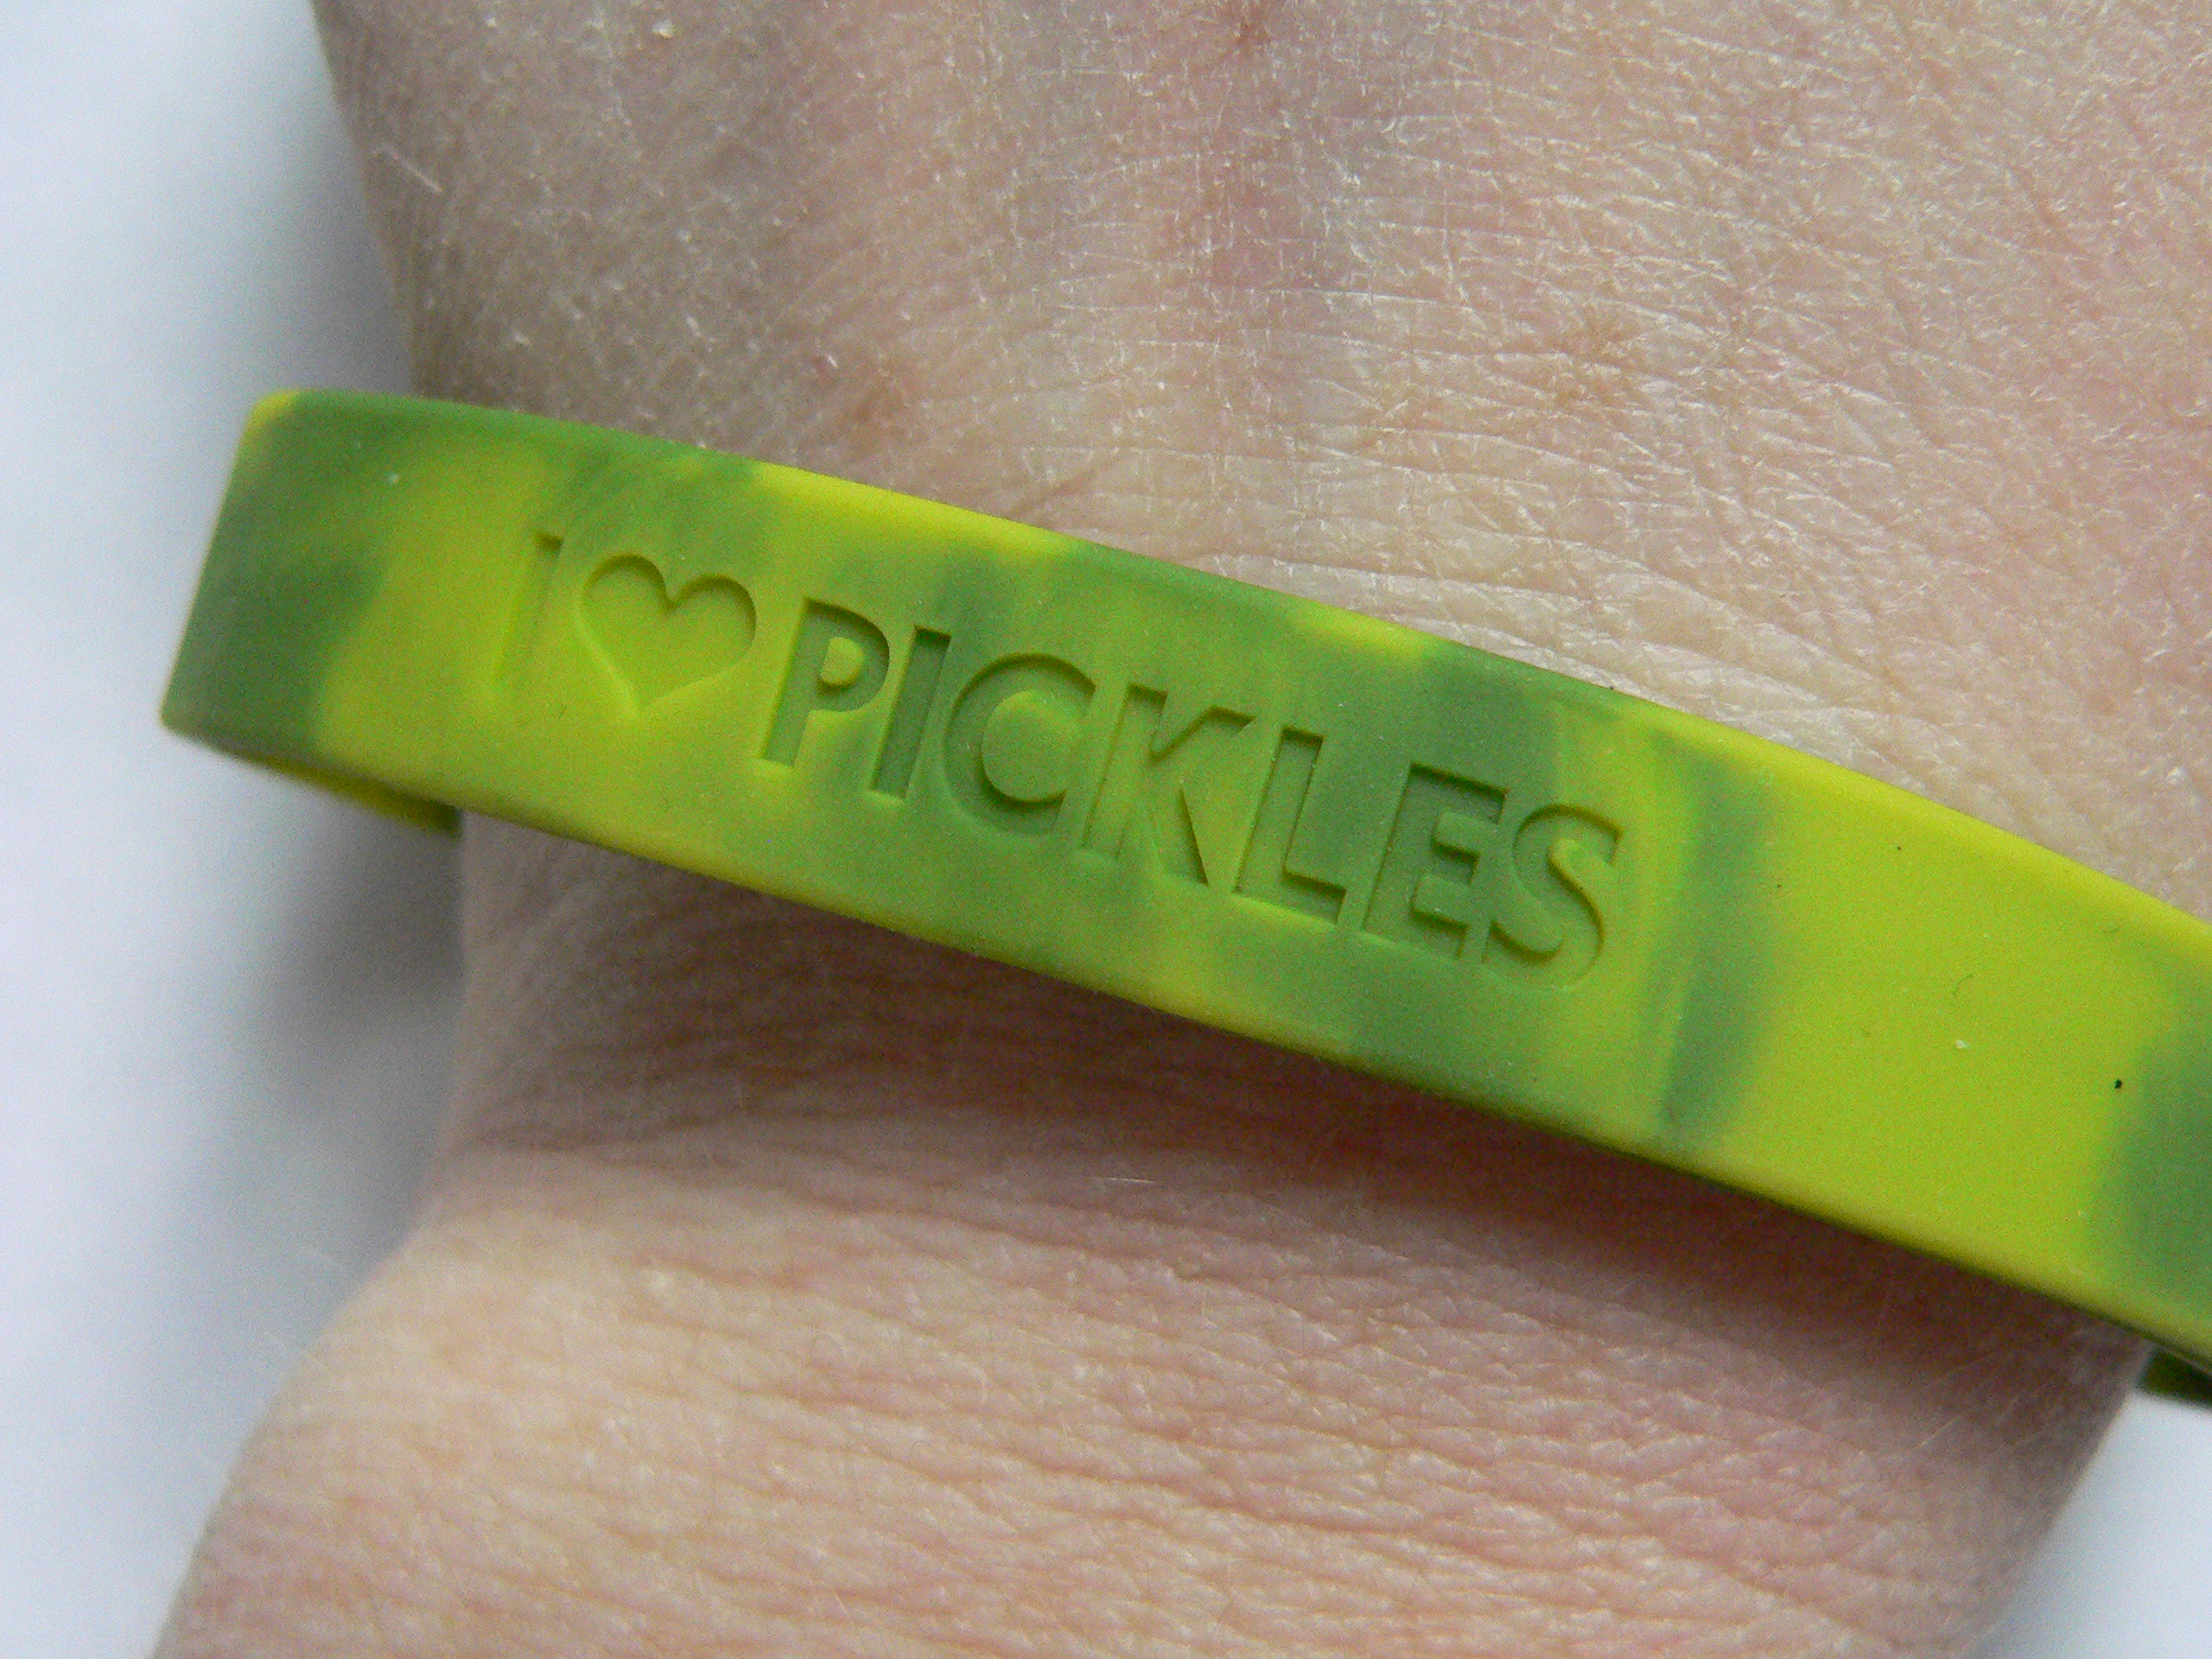 Wristband pickles onwrist